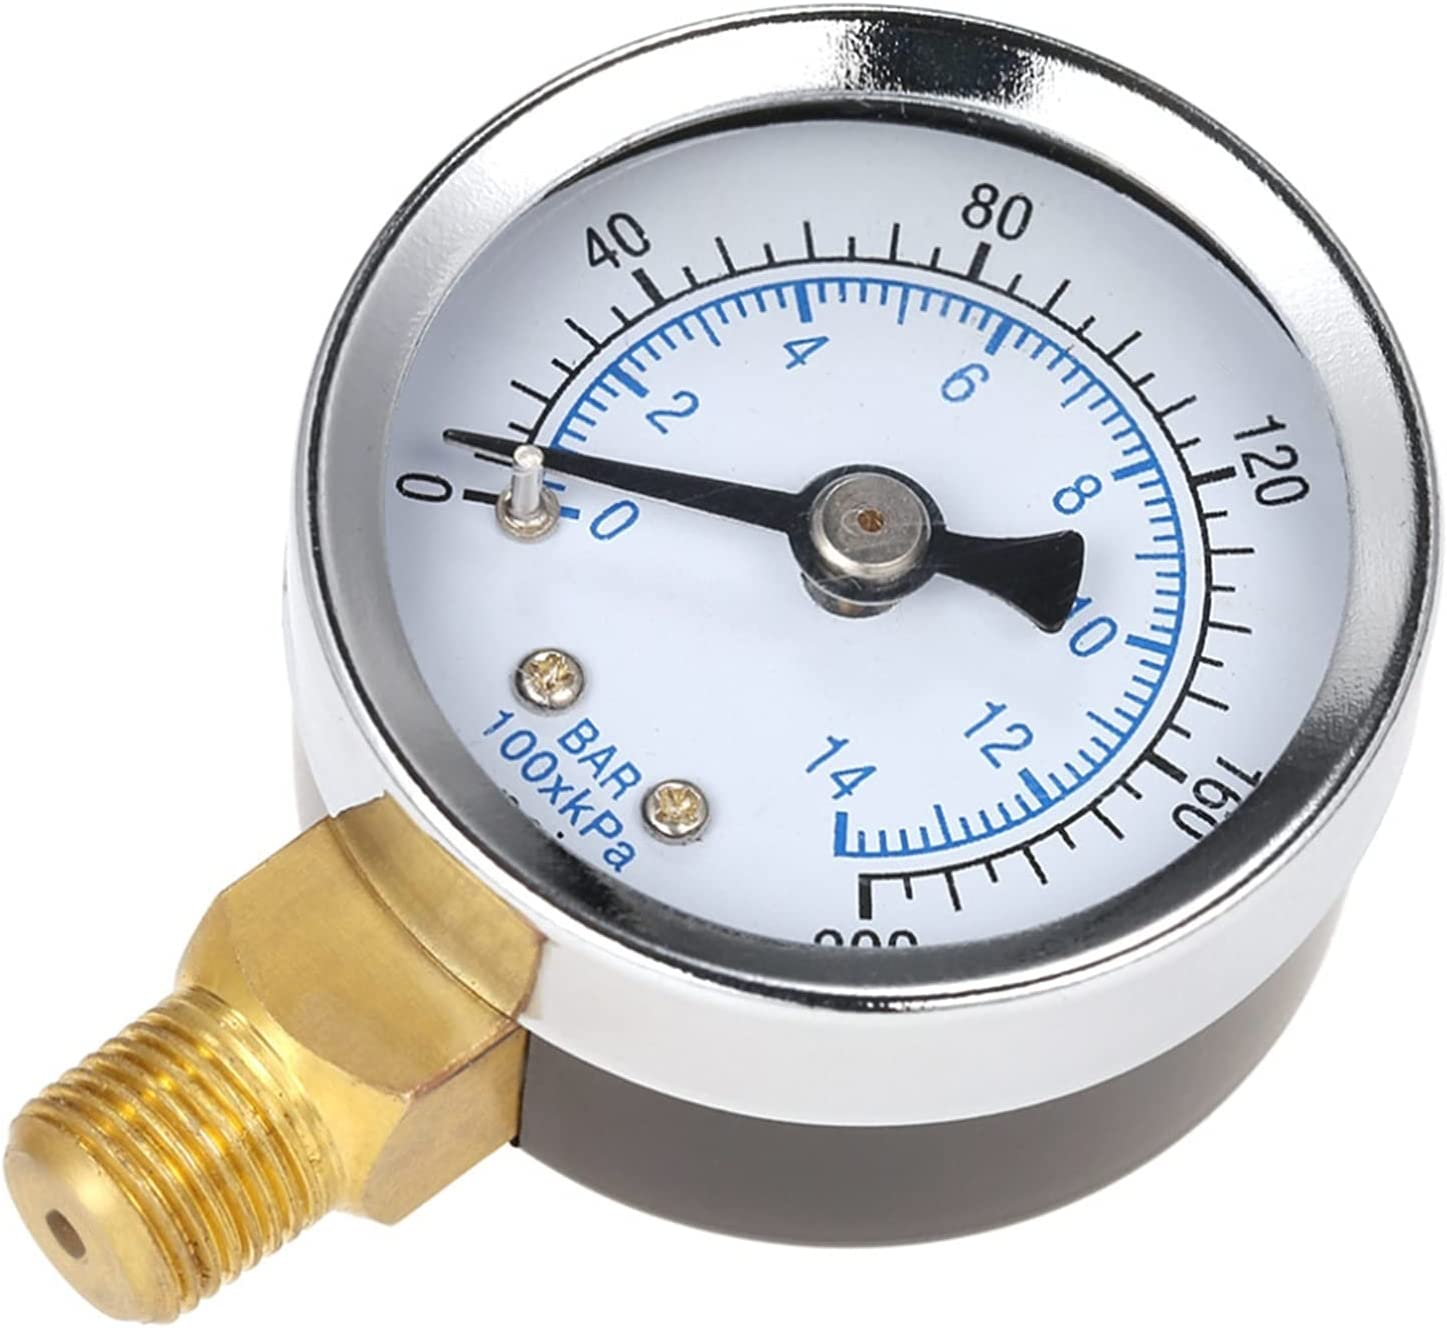 Direct sale of manufacturer CFDYKRP 40mm 0~200psi Import 0~14bar Pool Water Pressure Dial Hy Filter